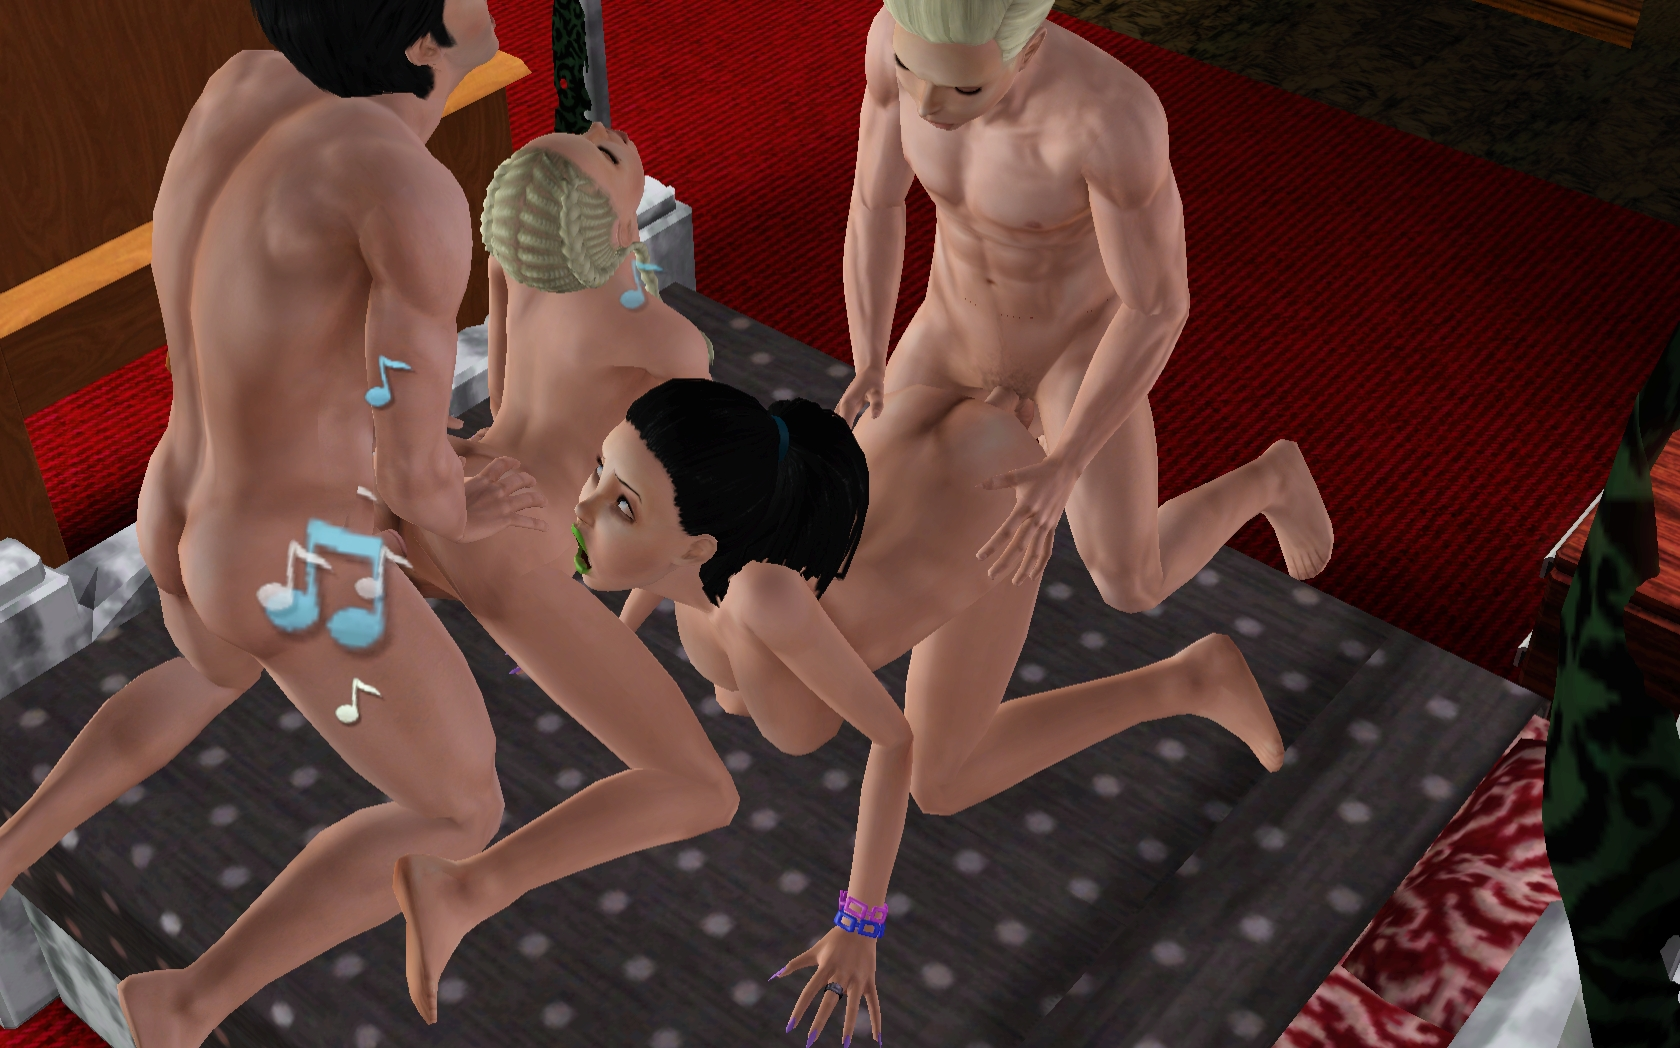 The sims sex mod